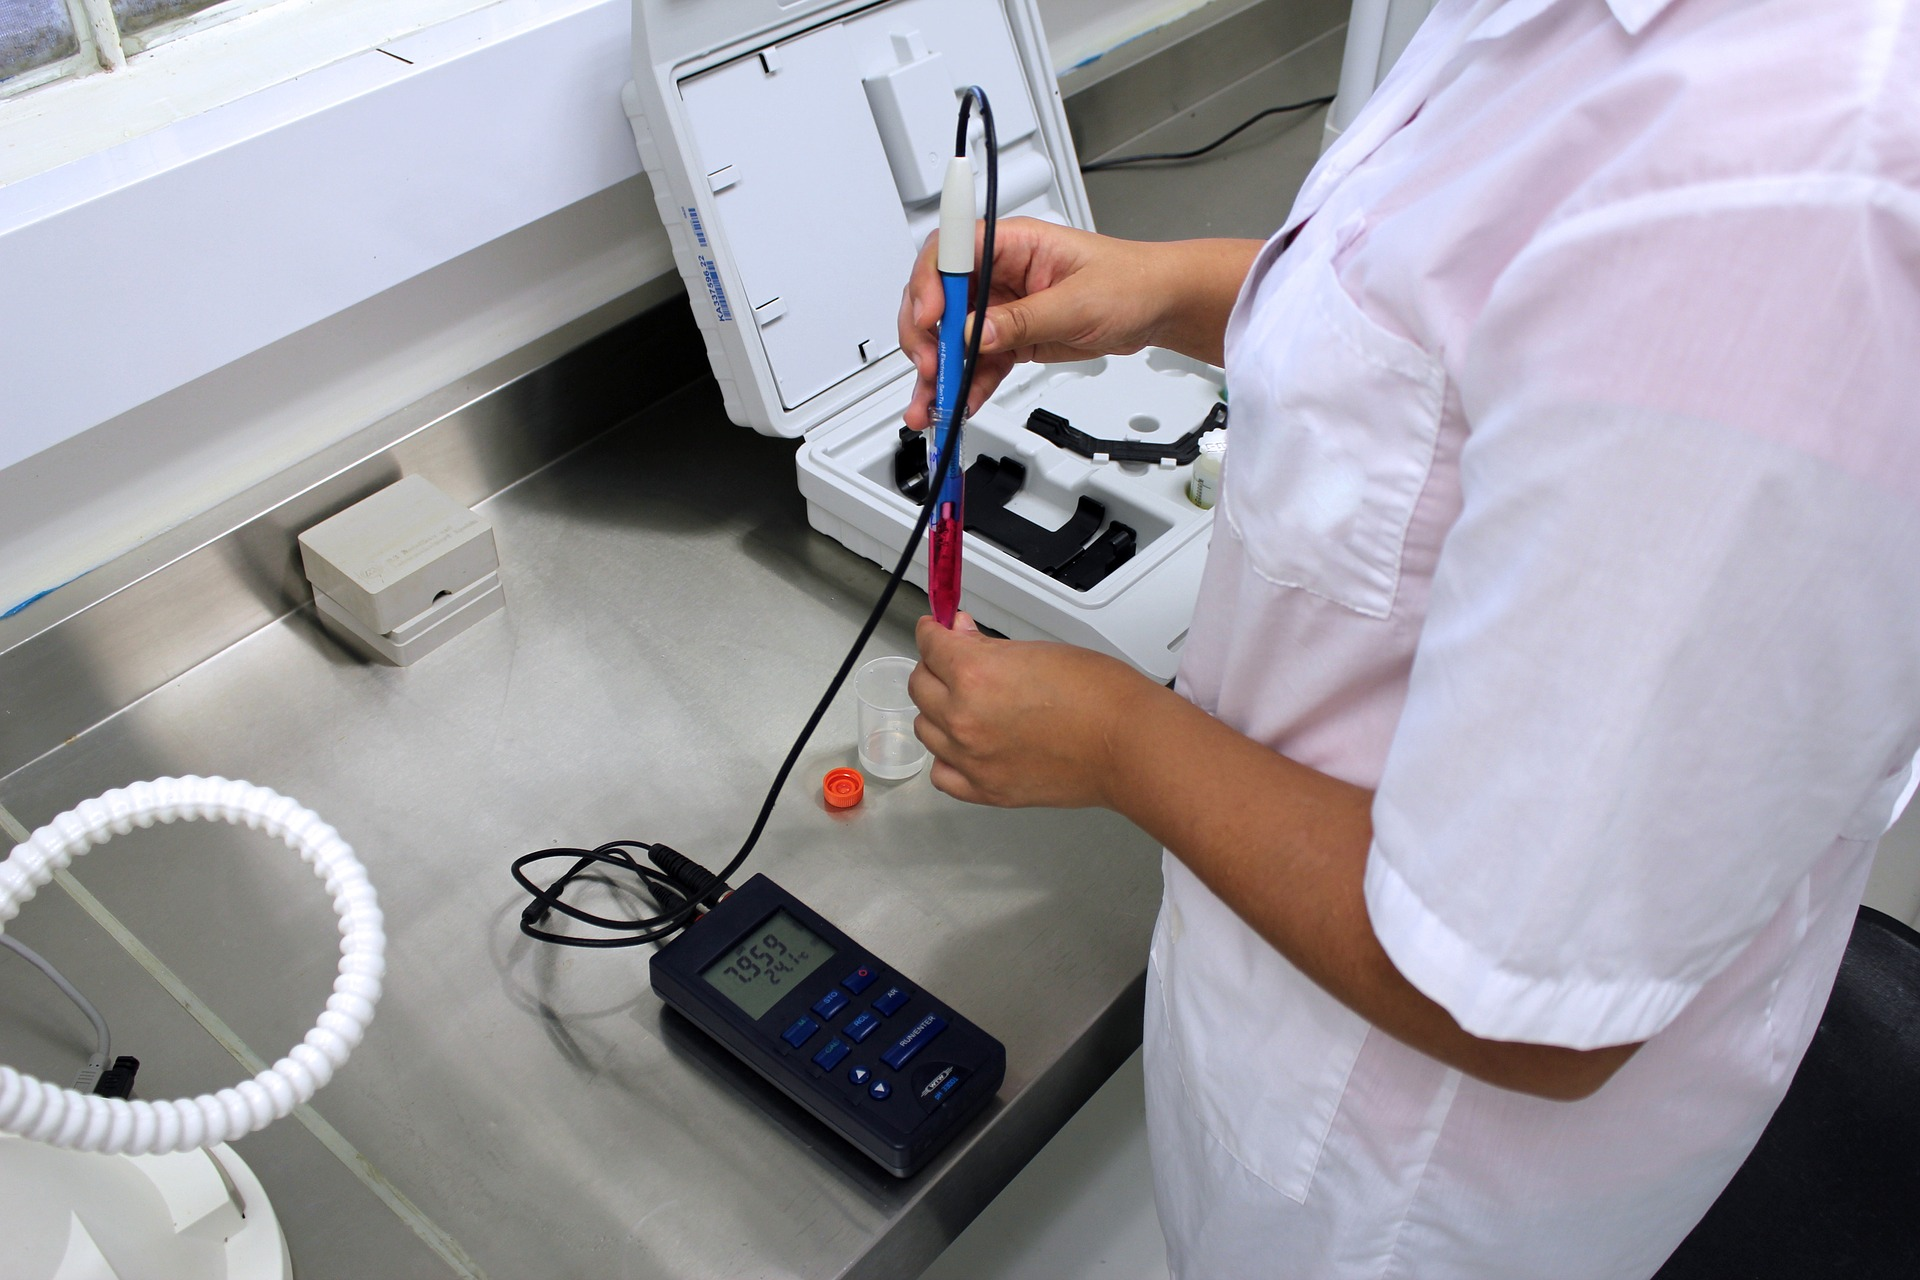 A person in a lab uses lab equipment.